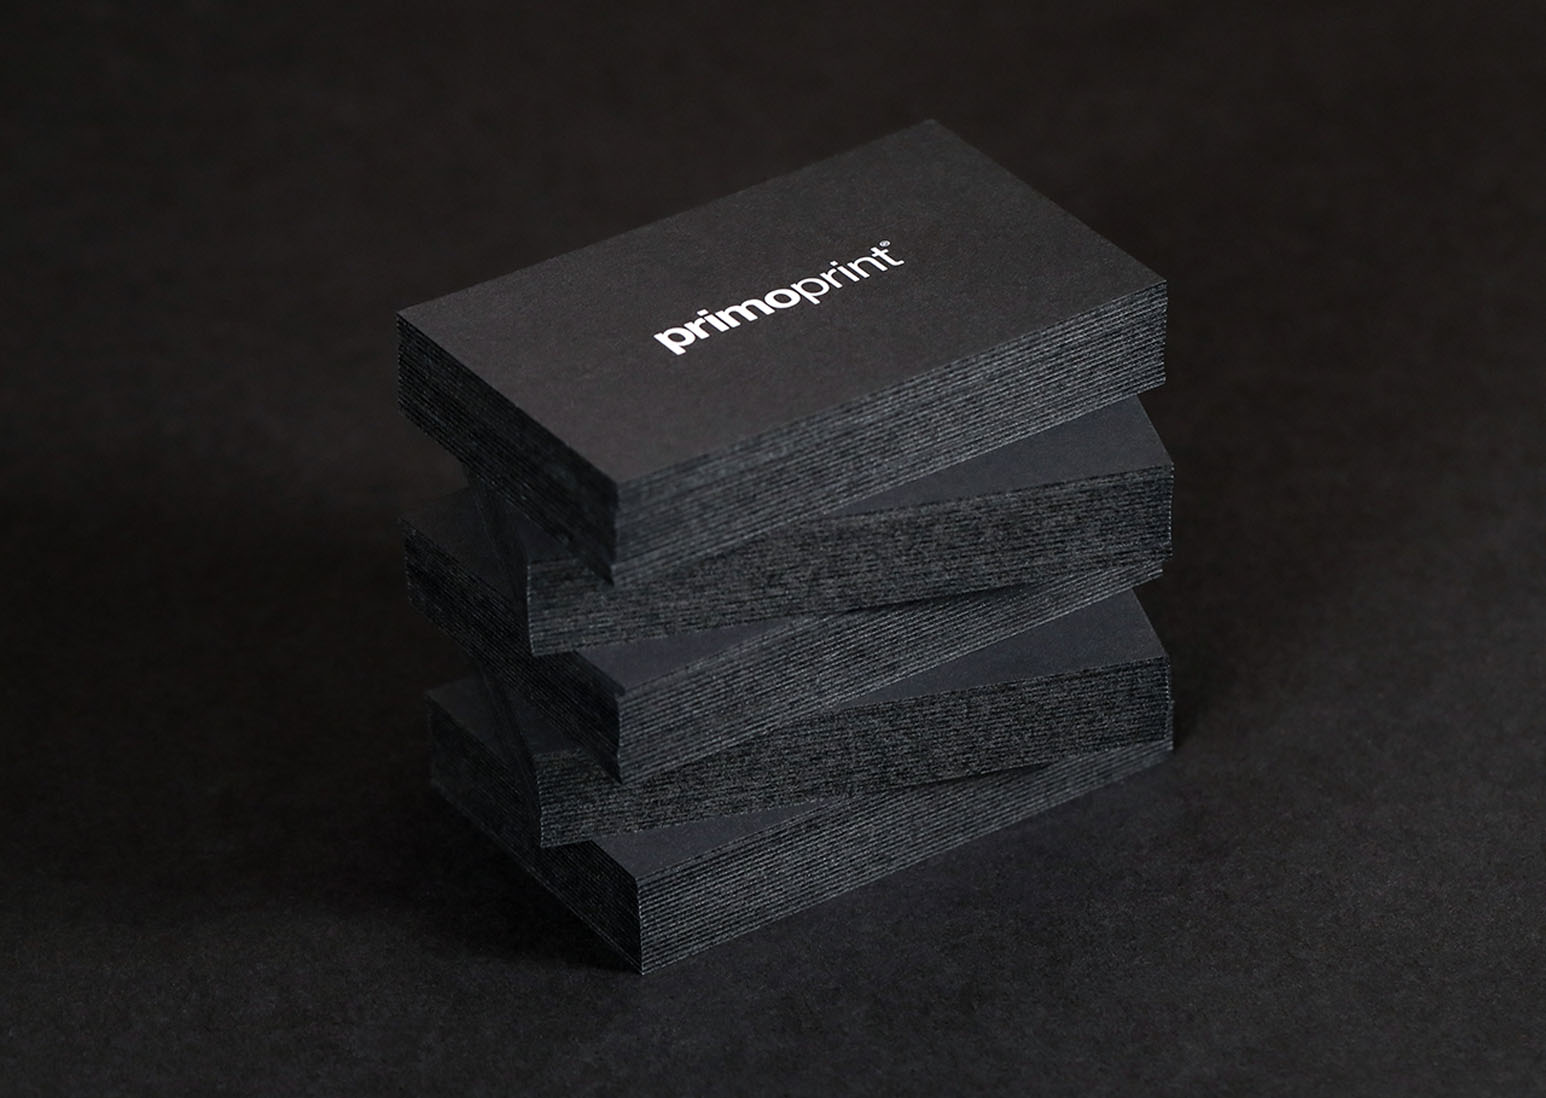 New Black Edge Cards Printed by Primoprint.